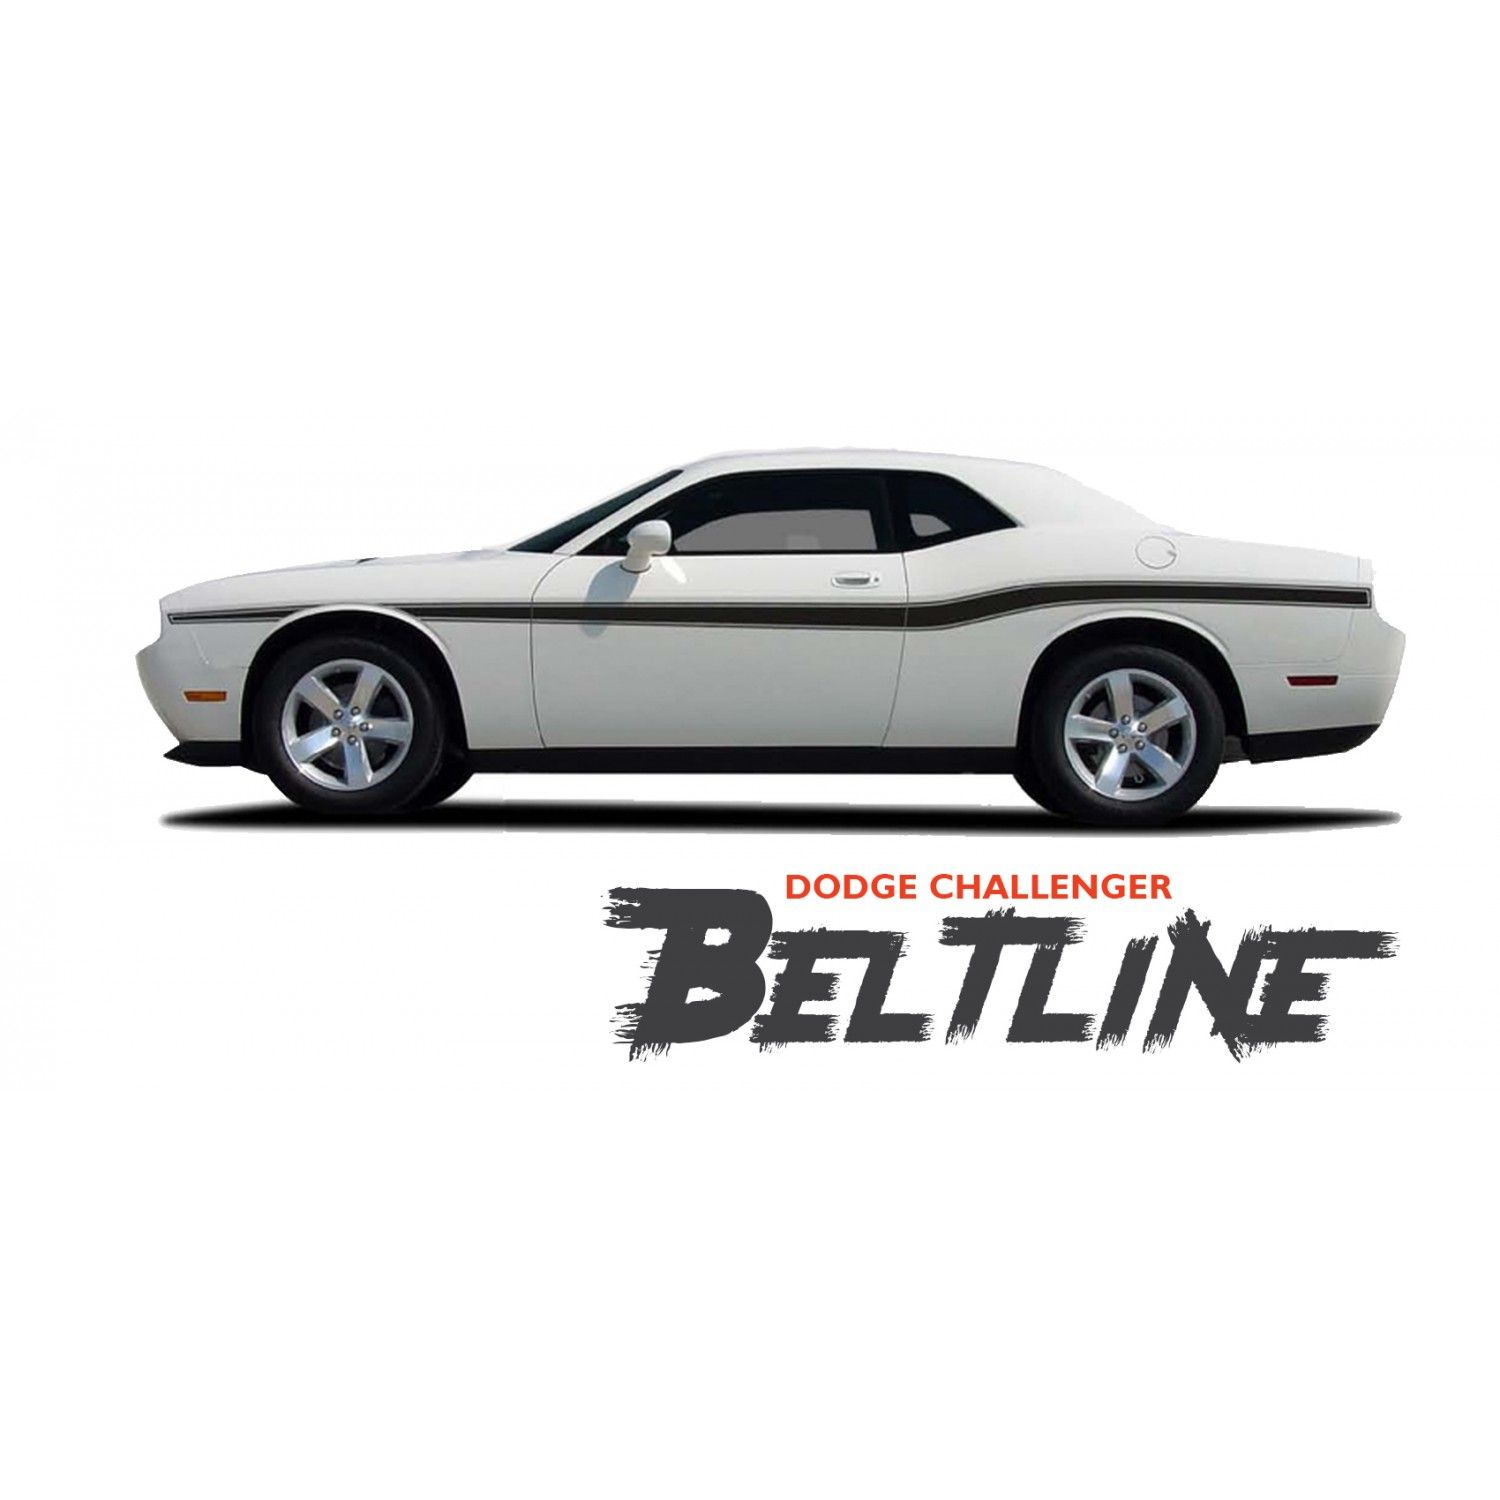 Dodge Challenger Beltline Mid Body Line Accent Stripe Vinyl Graphics Decals Kit For 2010 2011 2012 2013 2014 2015 2016 2017 2018 2019 2020 2021 Dodge Challenger Vinyl Graphics Vinyl For Cars